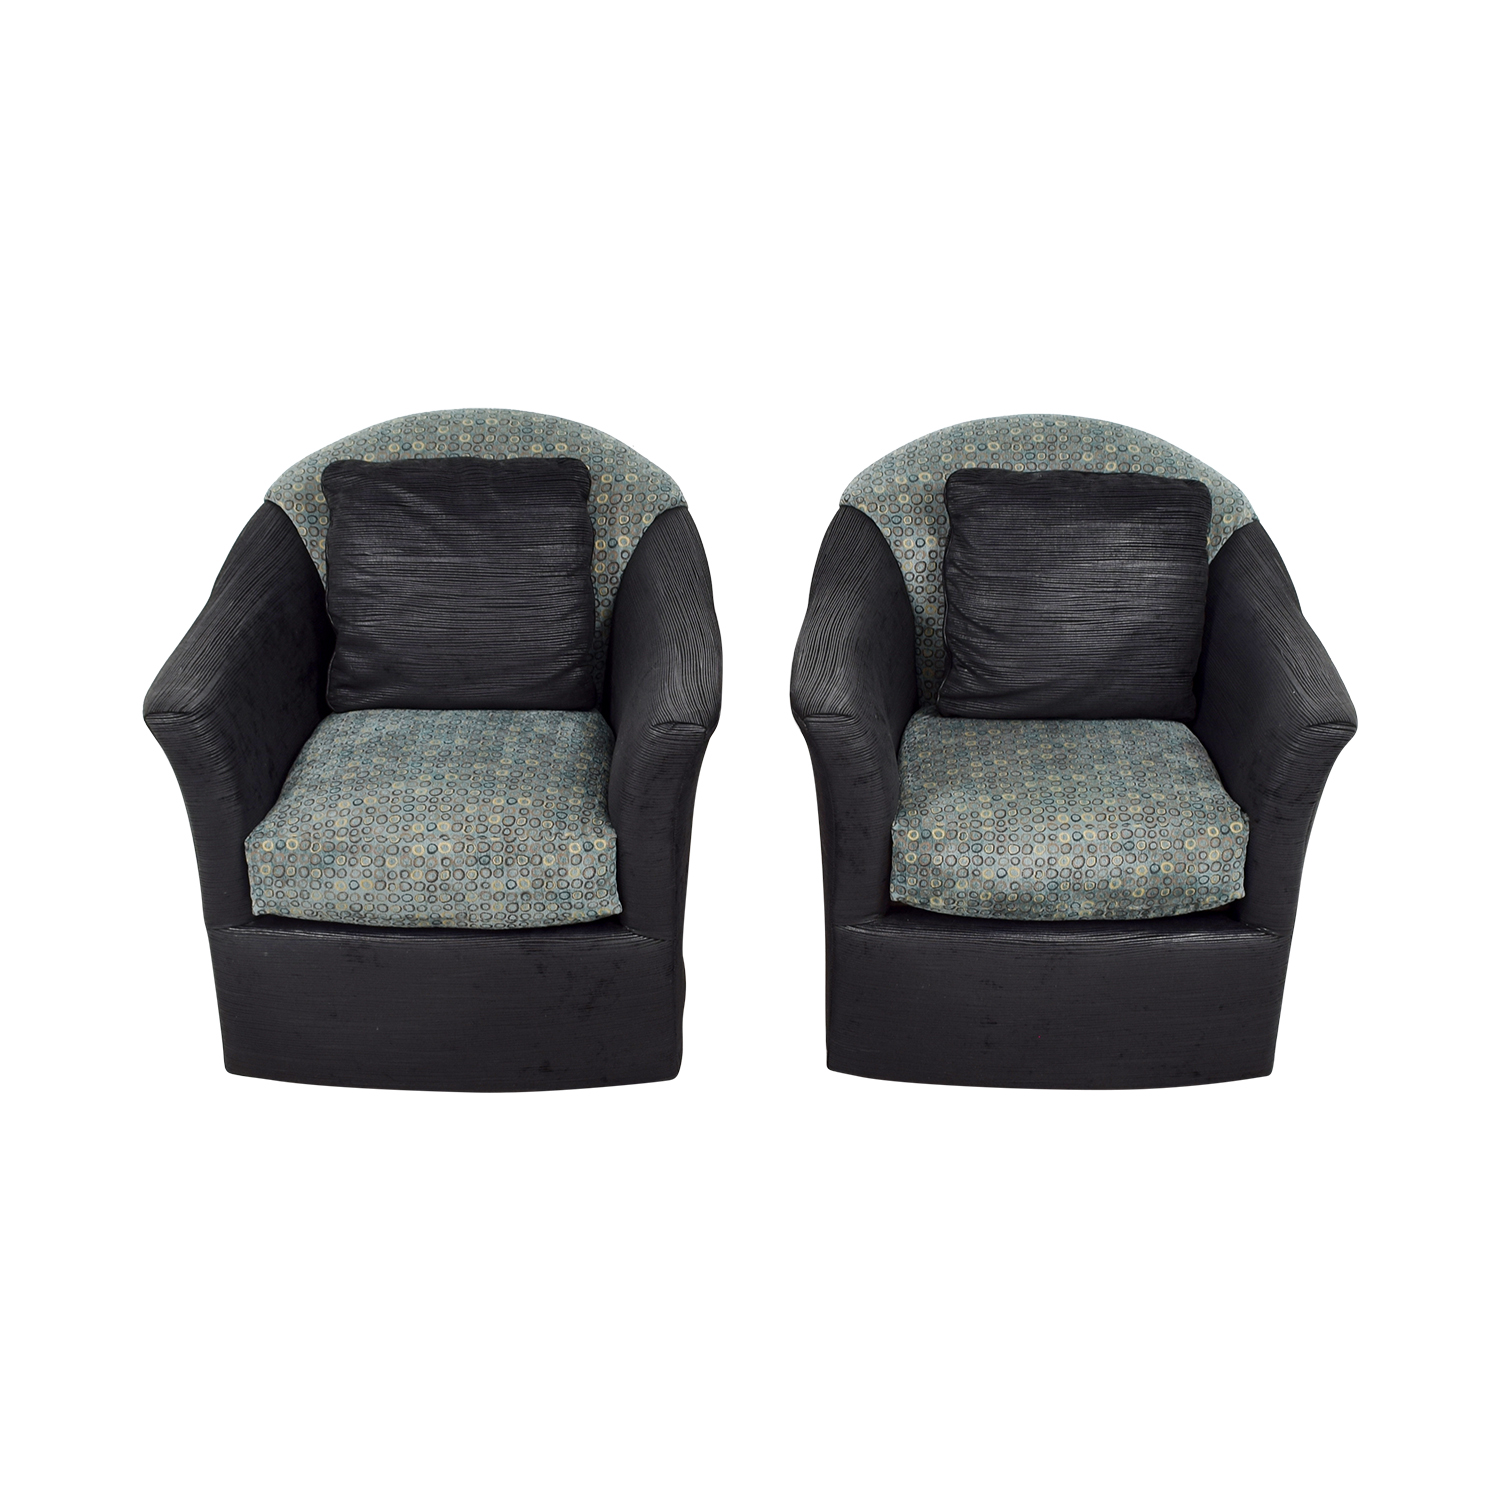 90 off fairfield fairfield barrel black blue and gold accent chairs chairs. Black Bedroom Furniture Sets. Home Design Ideas